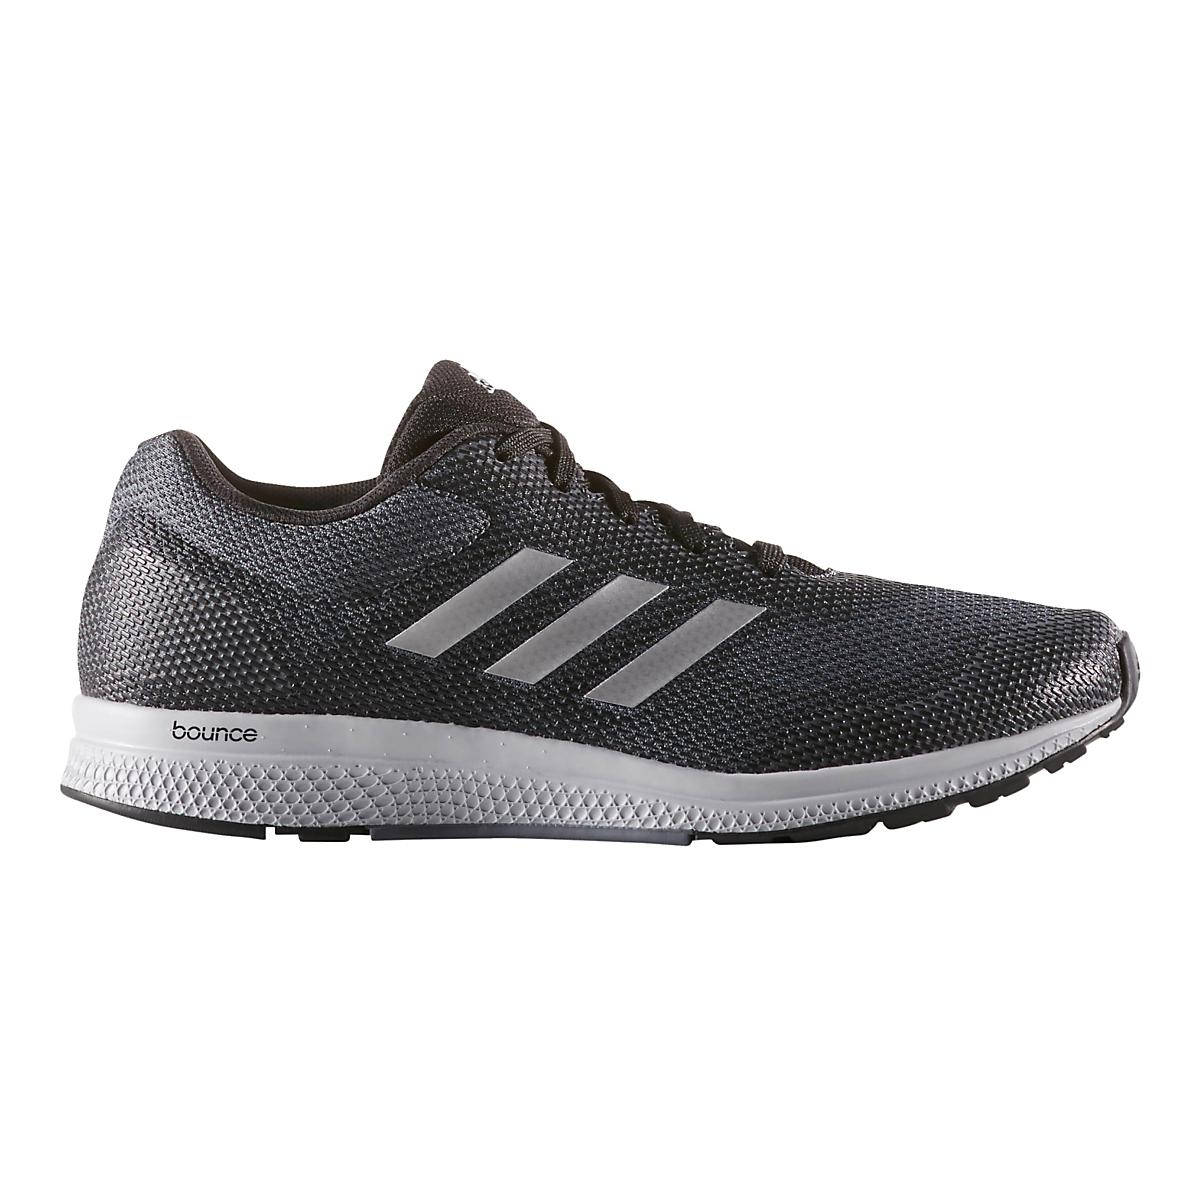 be99971b7a721 Womens adidas Mana Bounce 2 Aramis Running Shoe at Road Runner Sports